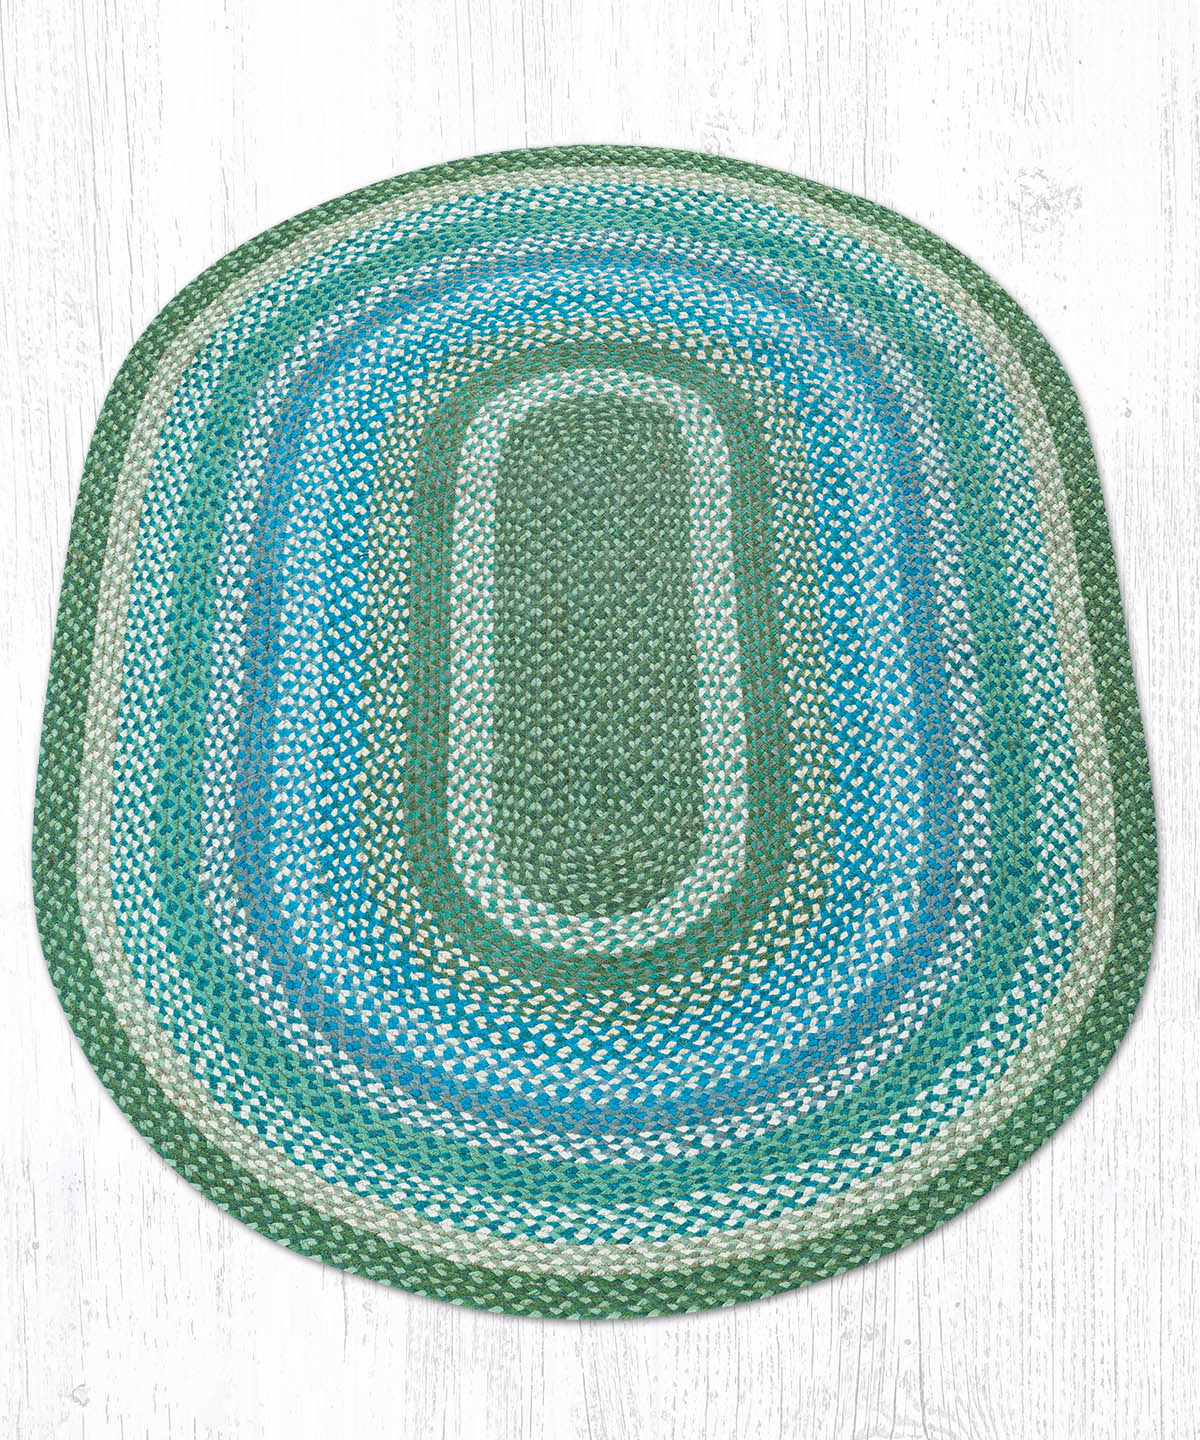 C-419 Sage/Ivory/Settlers Blue Oval Braided Rug 4'x6'